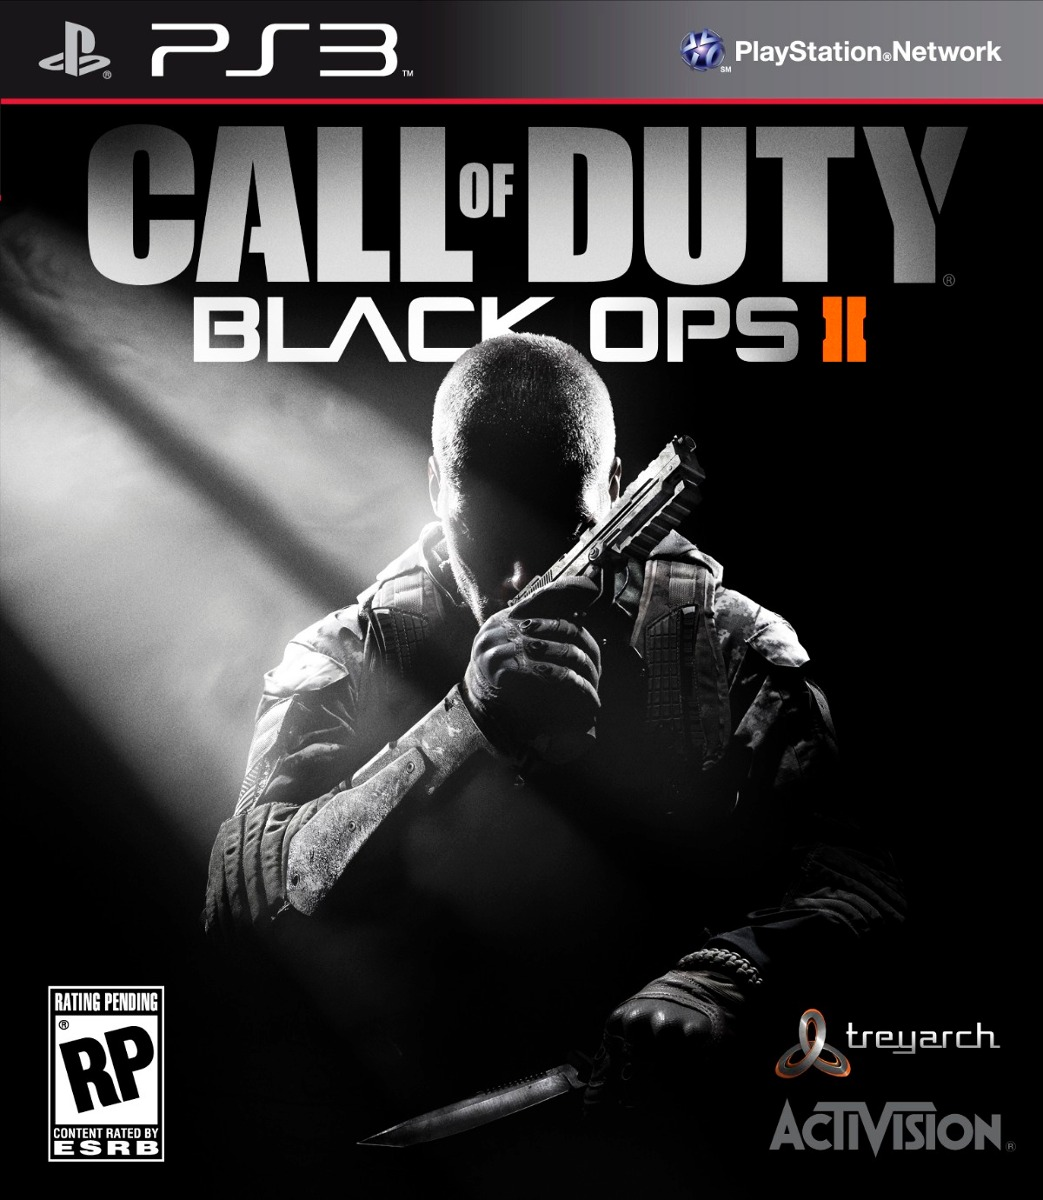 Call Of Duty Black Ops 2 With Revolution Map Pack - Ps3 Dig. Call Of Duty Black Ops Map Packs on call of duty ghosts maps, black ops 1 map packs, all black ops map packs, call duty black ops 3, call of duty blackops 2, call of duty mw3 map packs, call of duty advanced warfare maps, black ops ii map packs, call duty black ops zombies all maps, call of duty bo2 map packs, black ops 2 dlc map packs, call duty ghost multiplayer, call of duty 2 guns, call of duty apocalypse trailer, call of duty 3 zombies maps, bo2 dlc map packs, call of duty all zombie maps, call of duty 2 multiplayer maps, gta map packs, all 4 bo2 map packs,